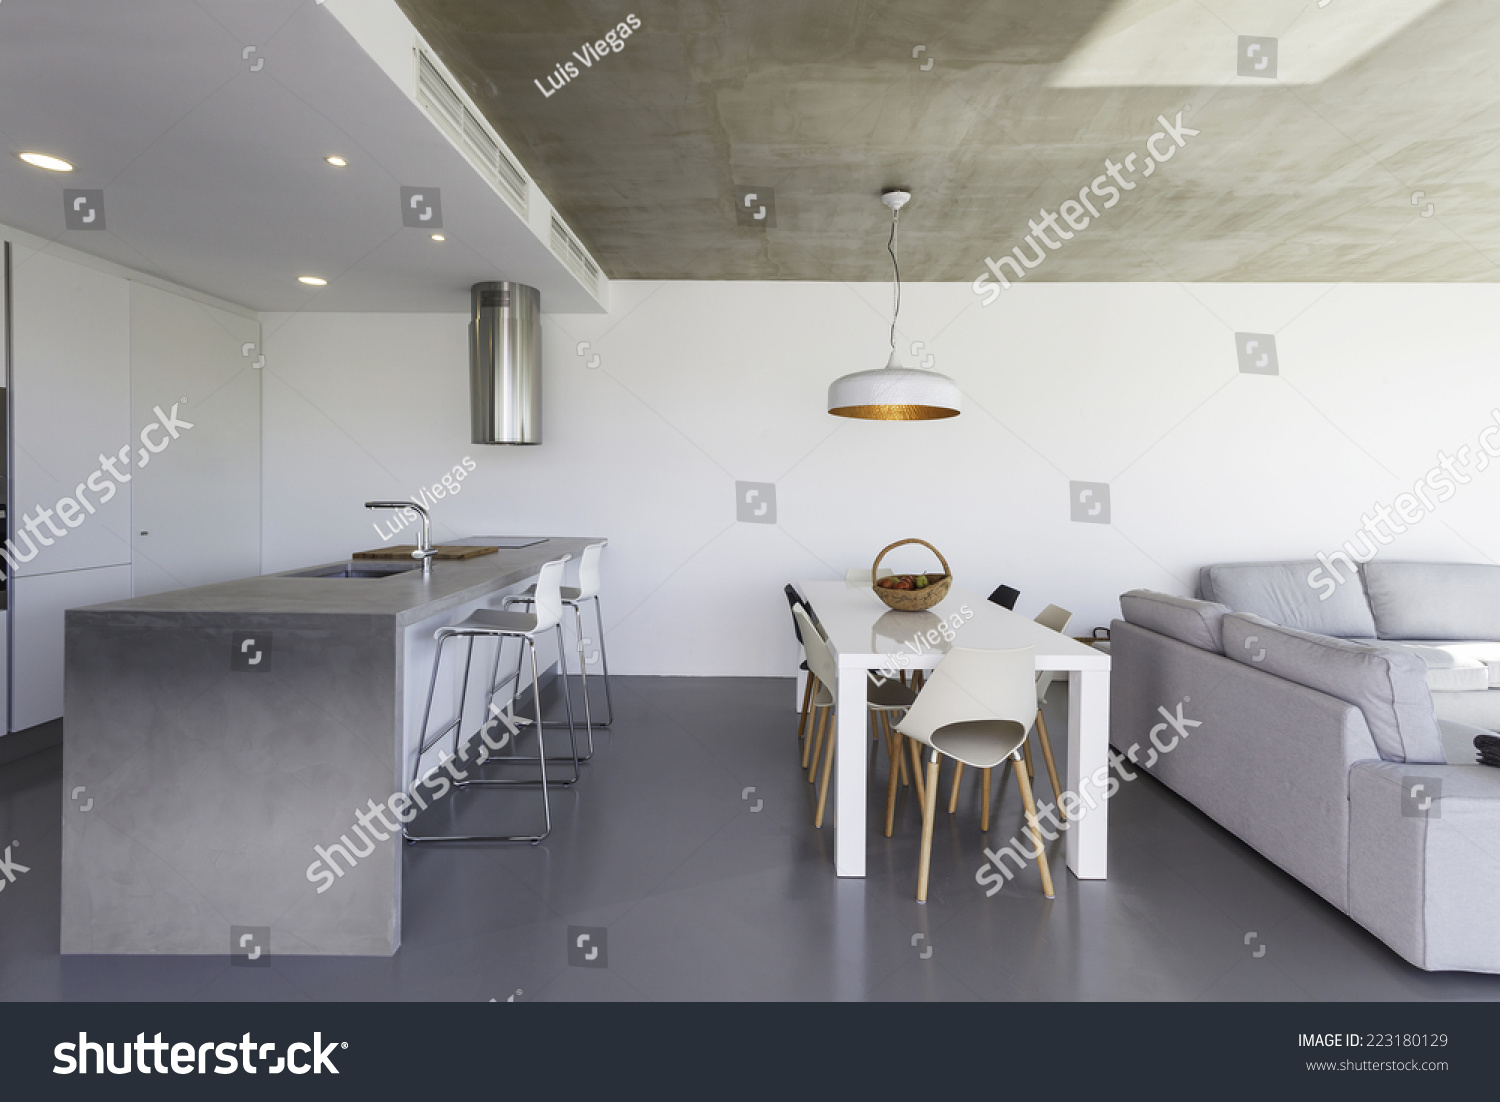 modern kitchen with gray tile floor and white wall Modern Kitchen Gray Tile Floor White Stock Photo 223180129